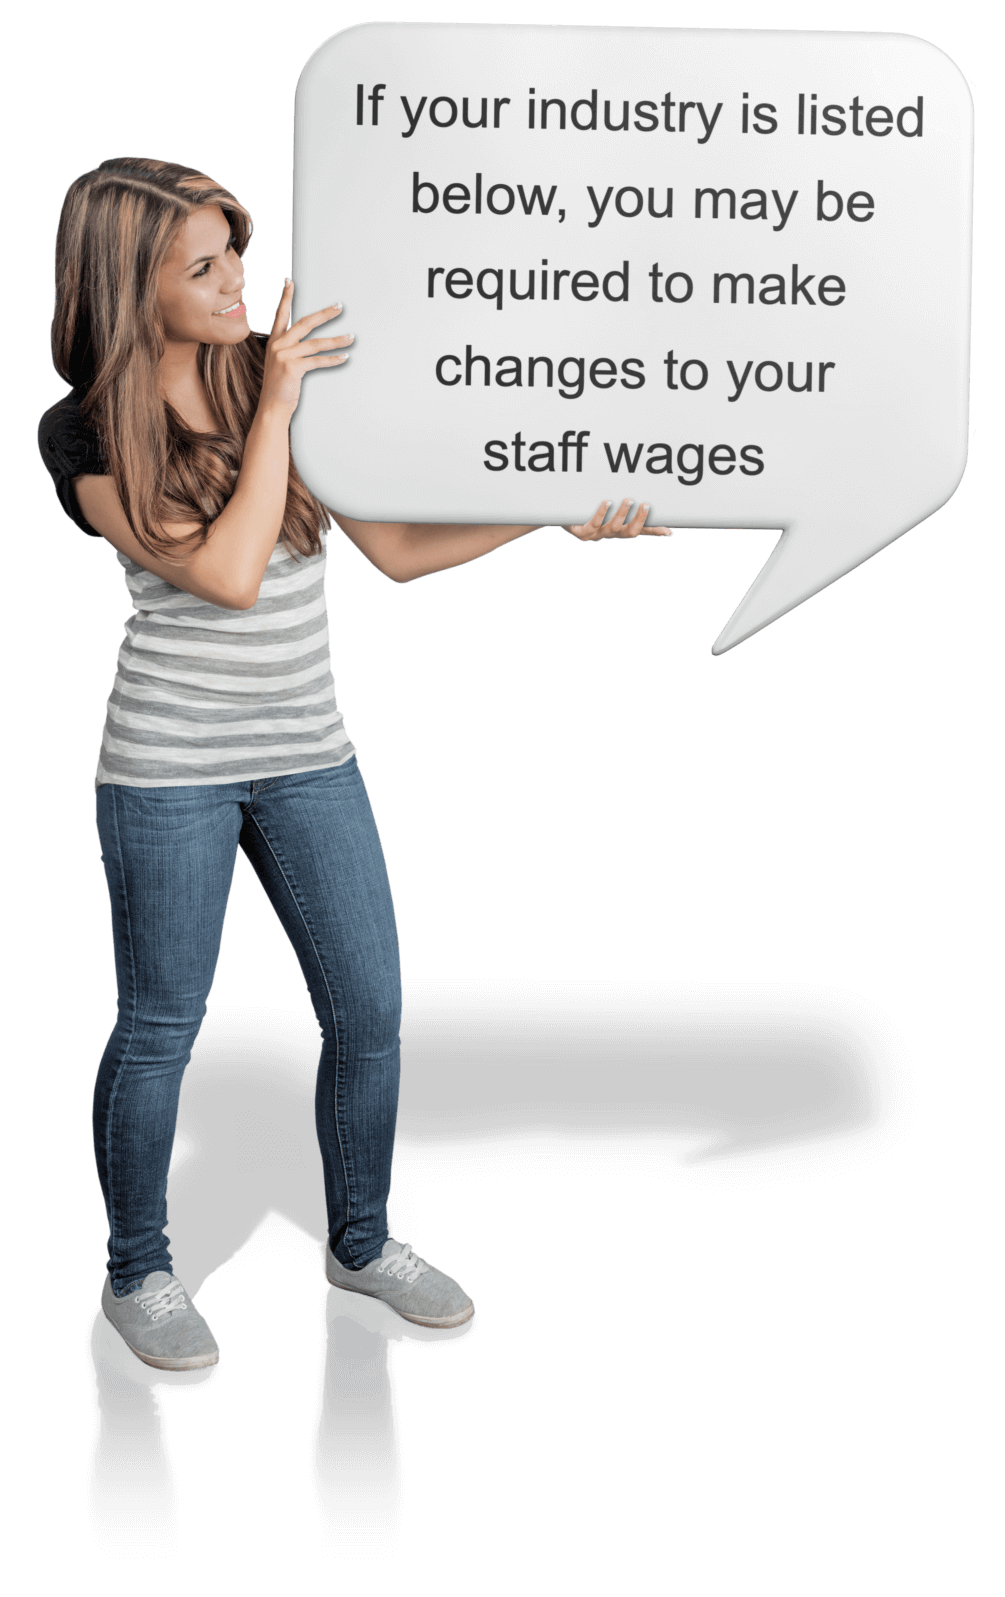 Increases to minimum wages